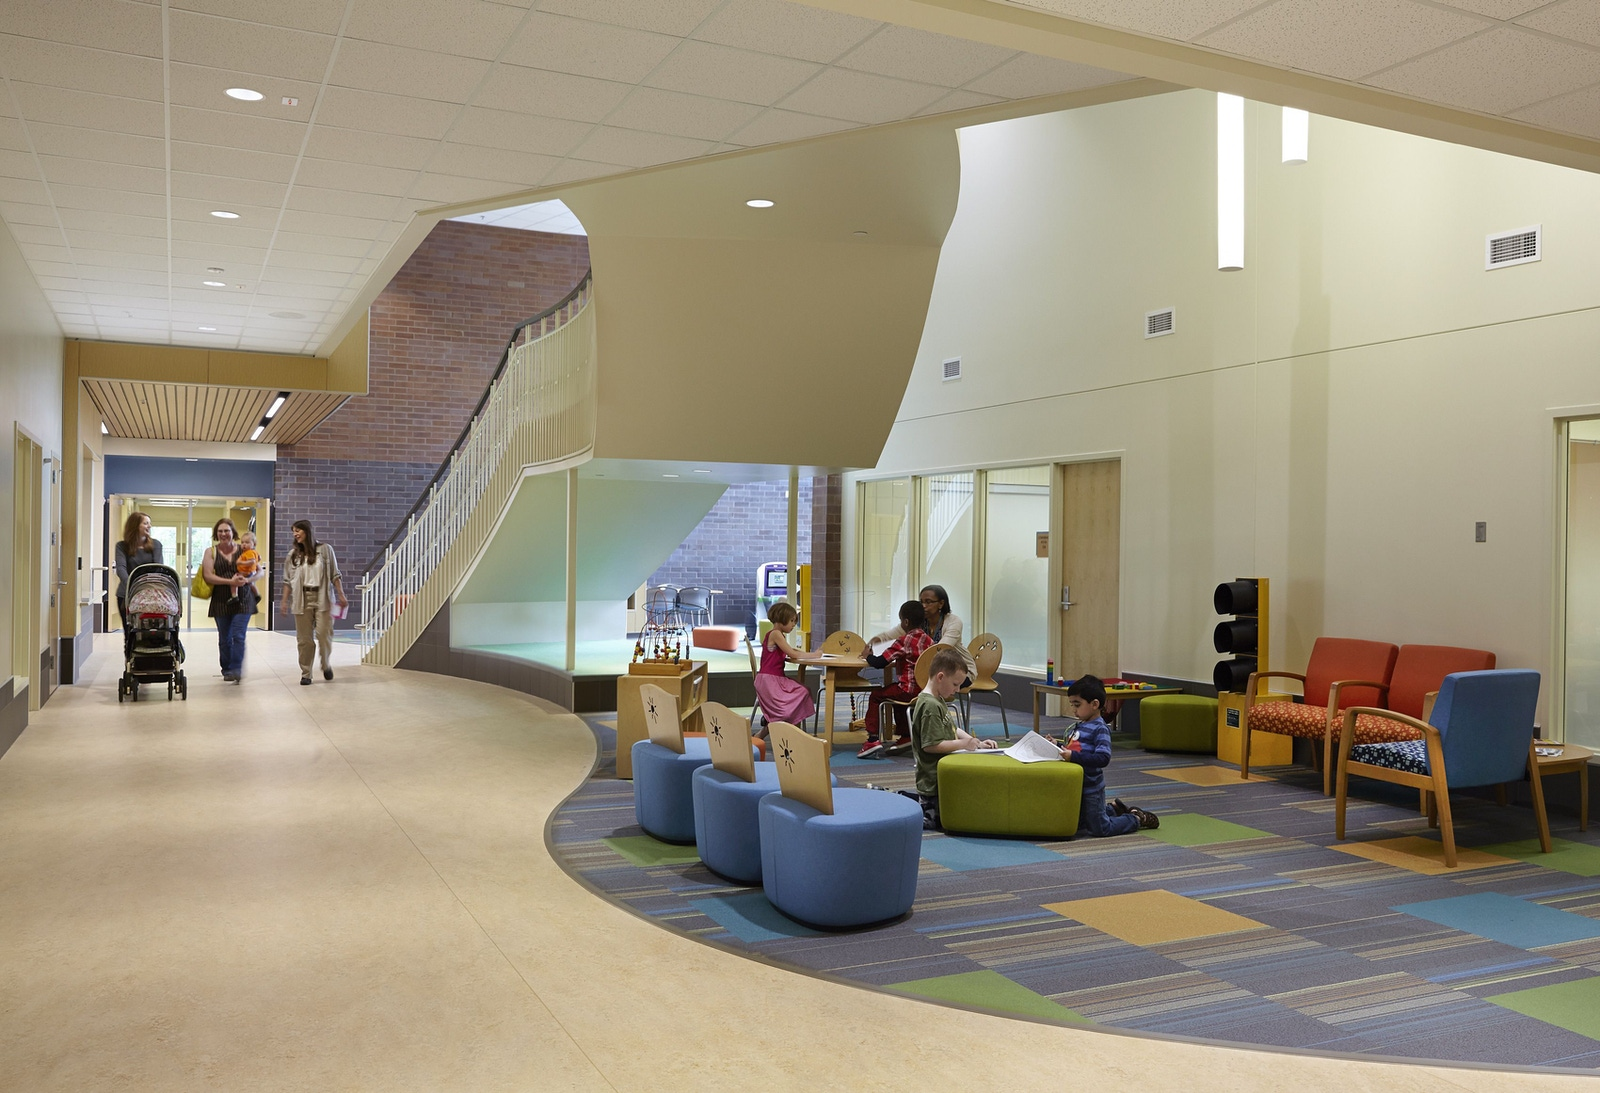 Architecture of Early Childhood 1